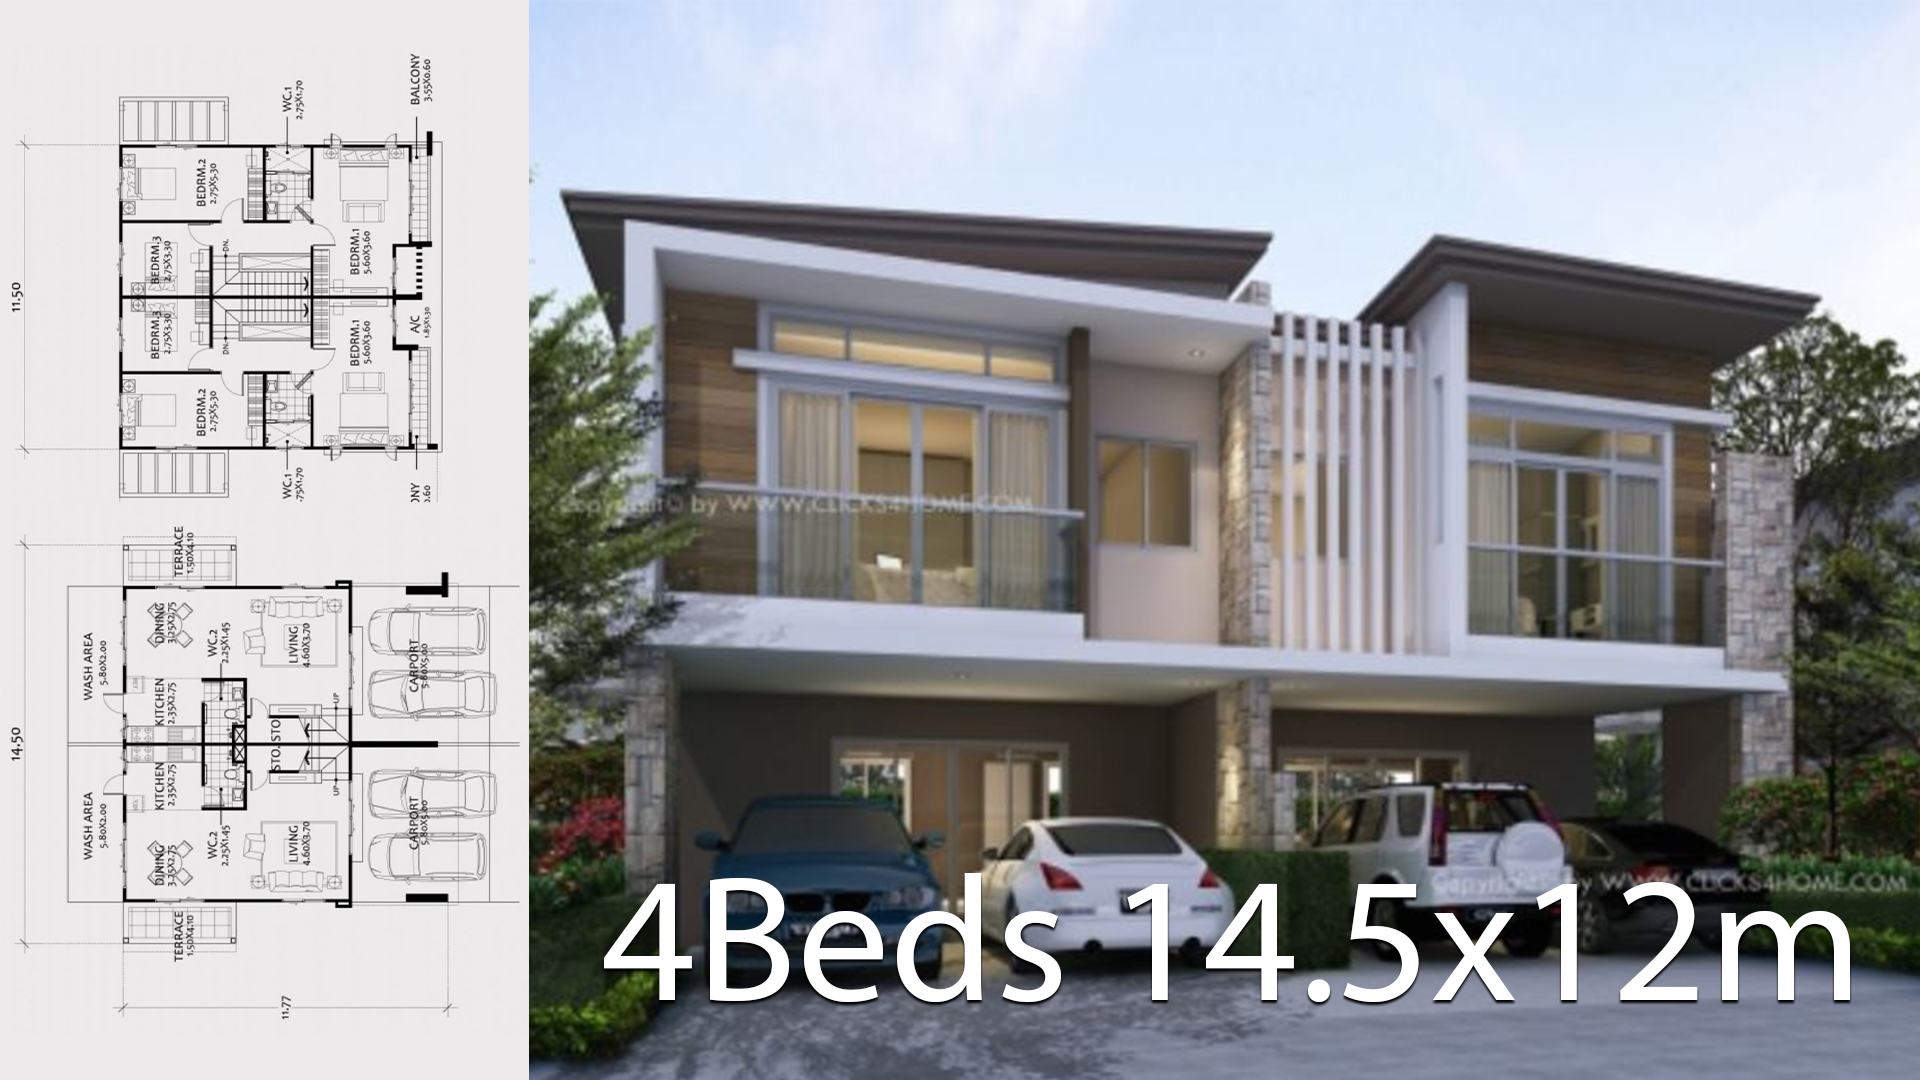 Twin house design plan 14.5x12m with 6 bedrooms - Home Ideas